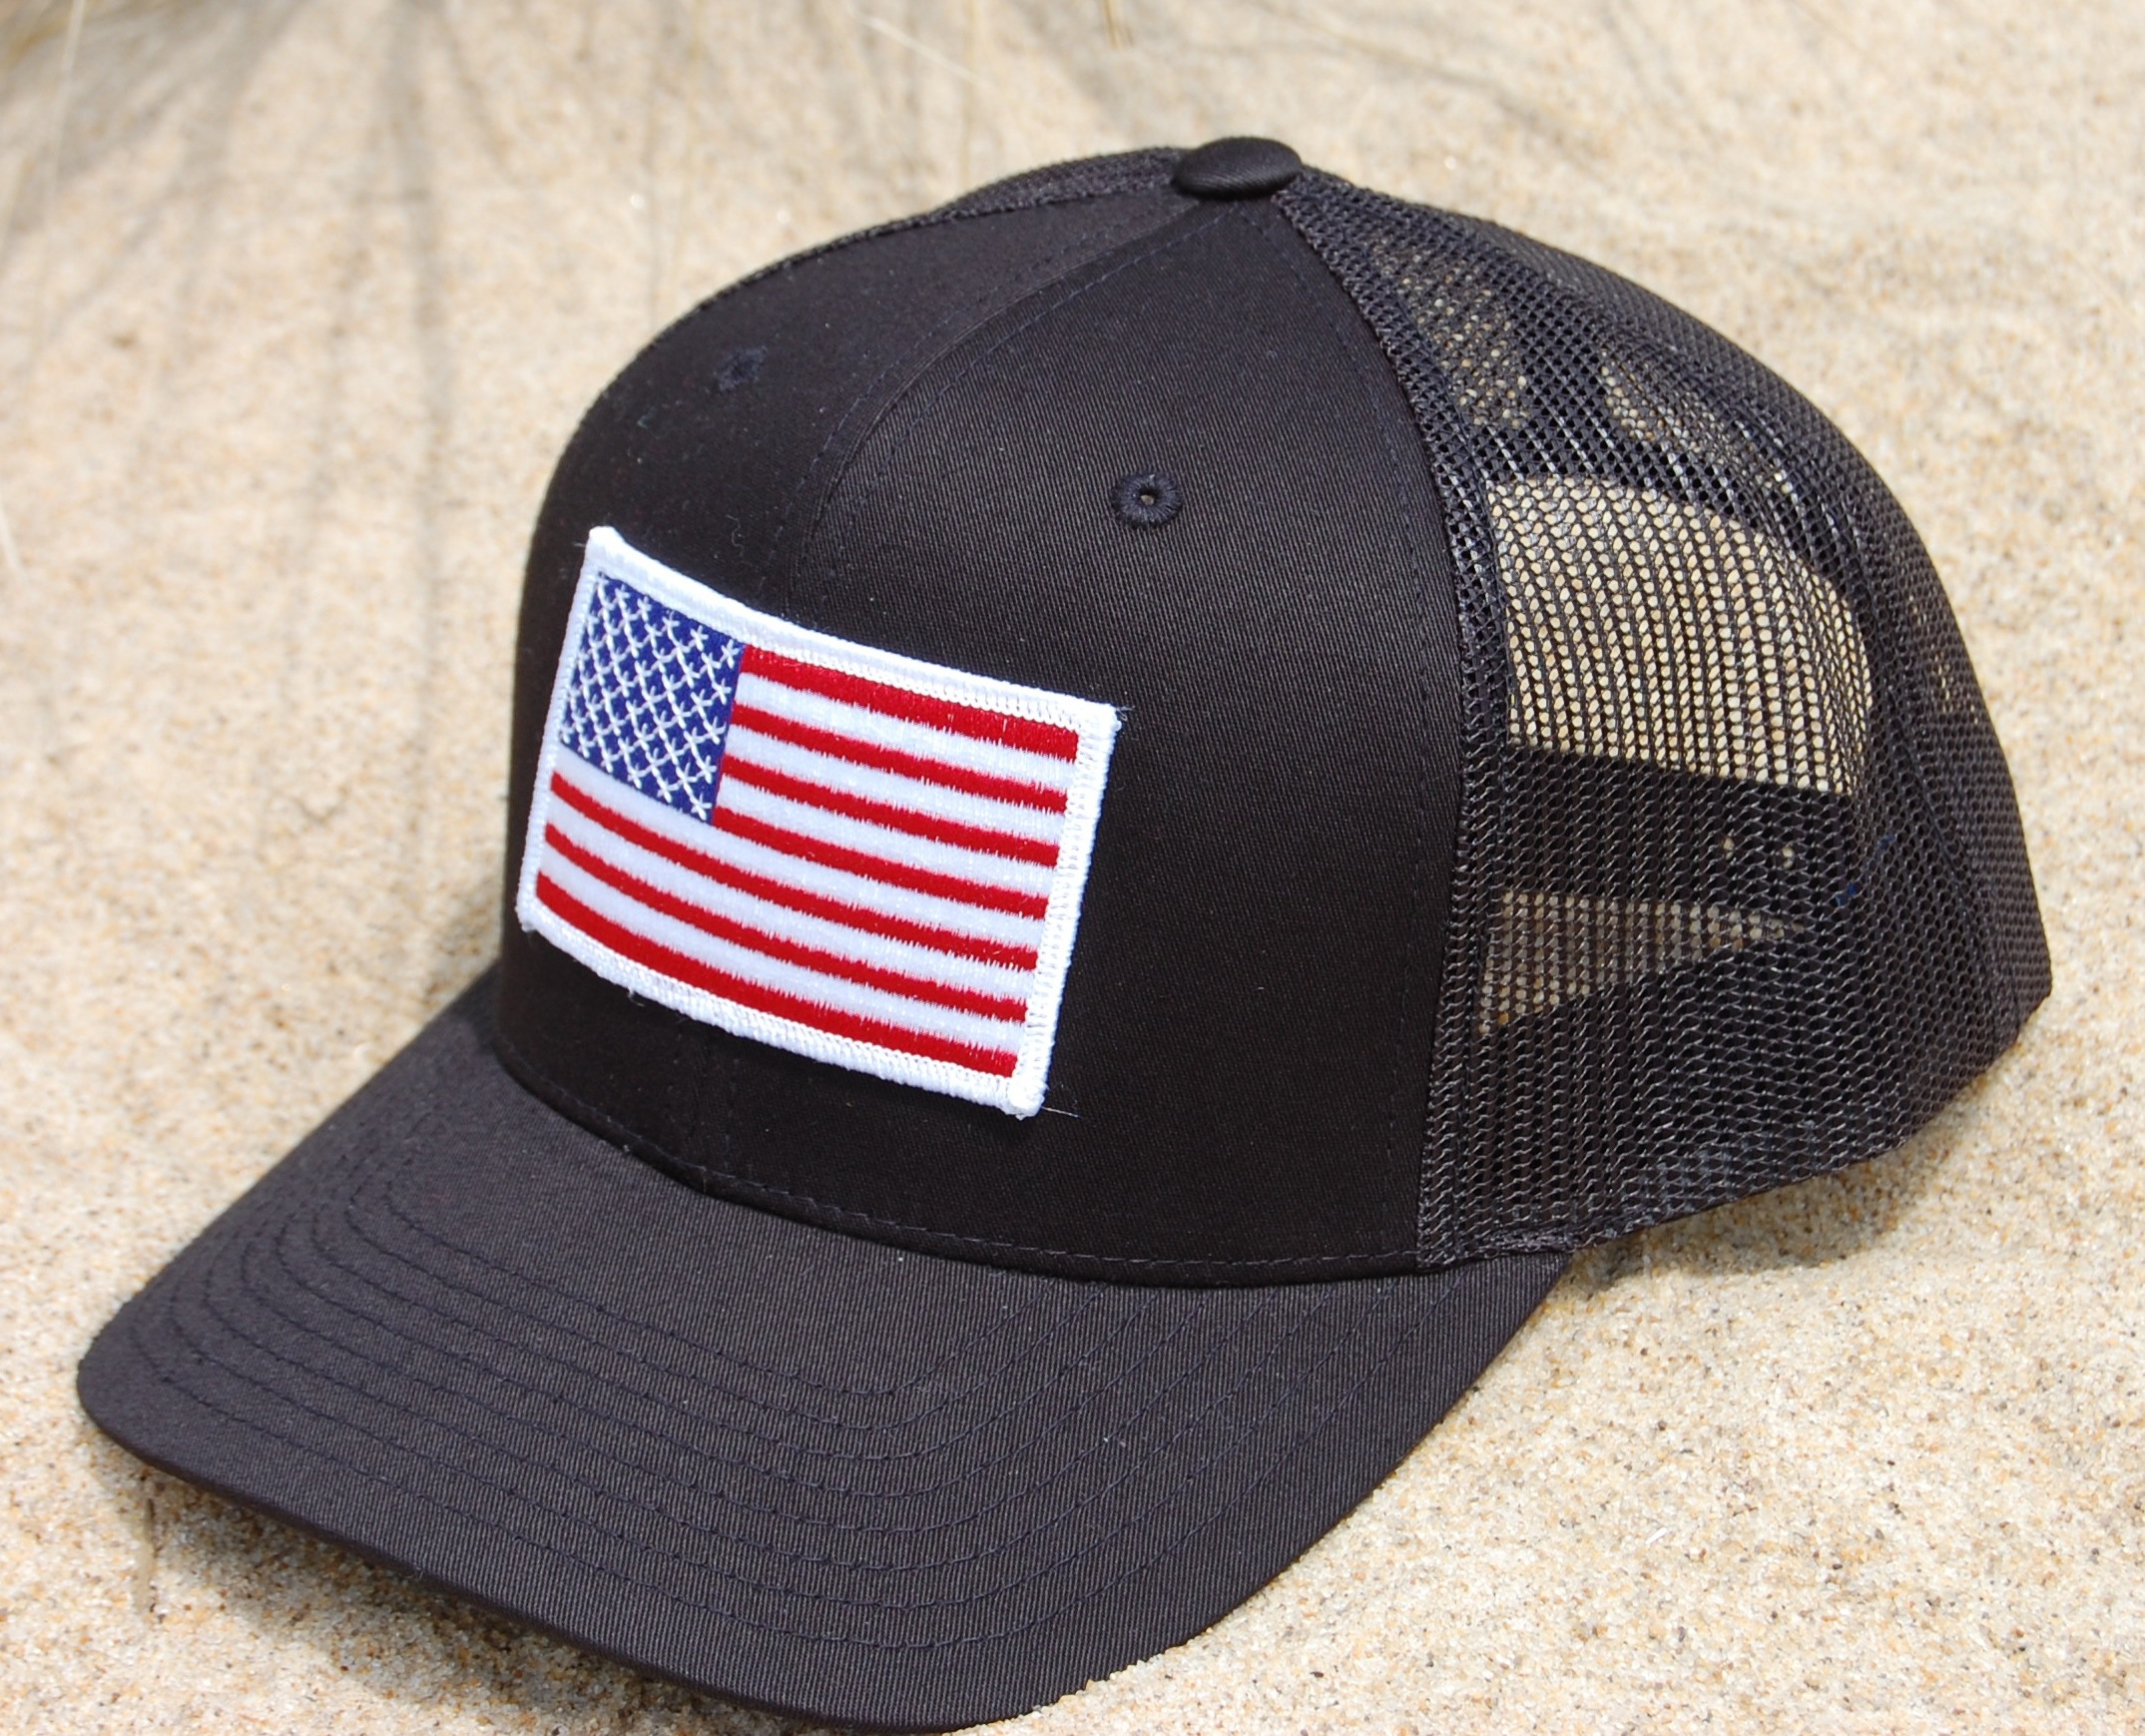 Trucker Patriot Hat Black- White or Gold Outline - Schmee 7f25372df31